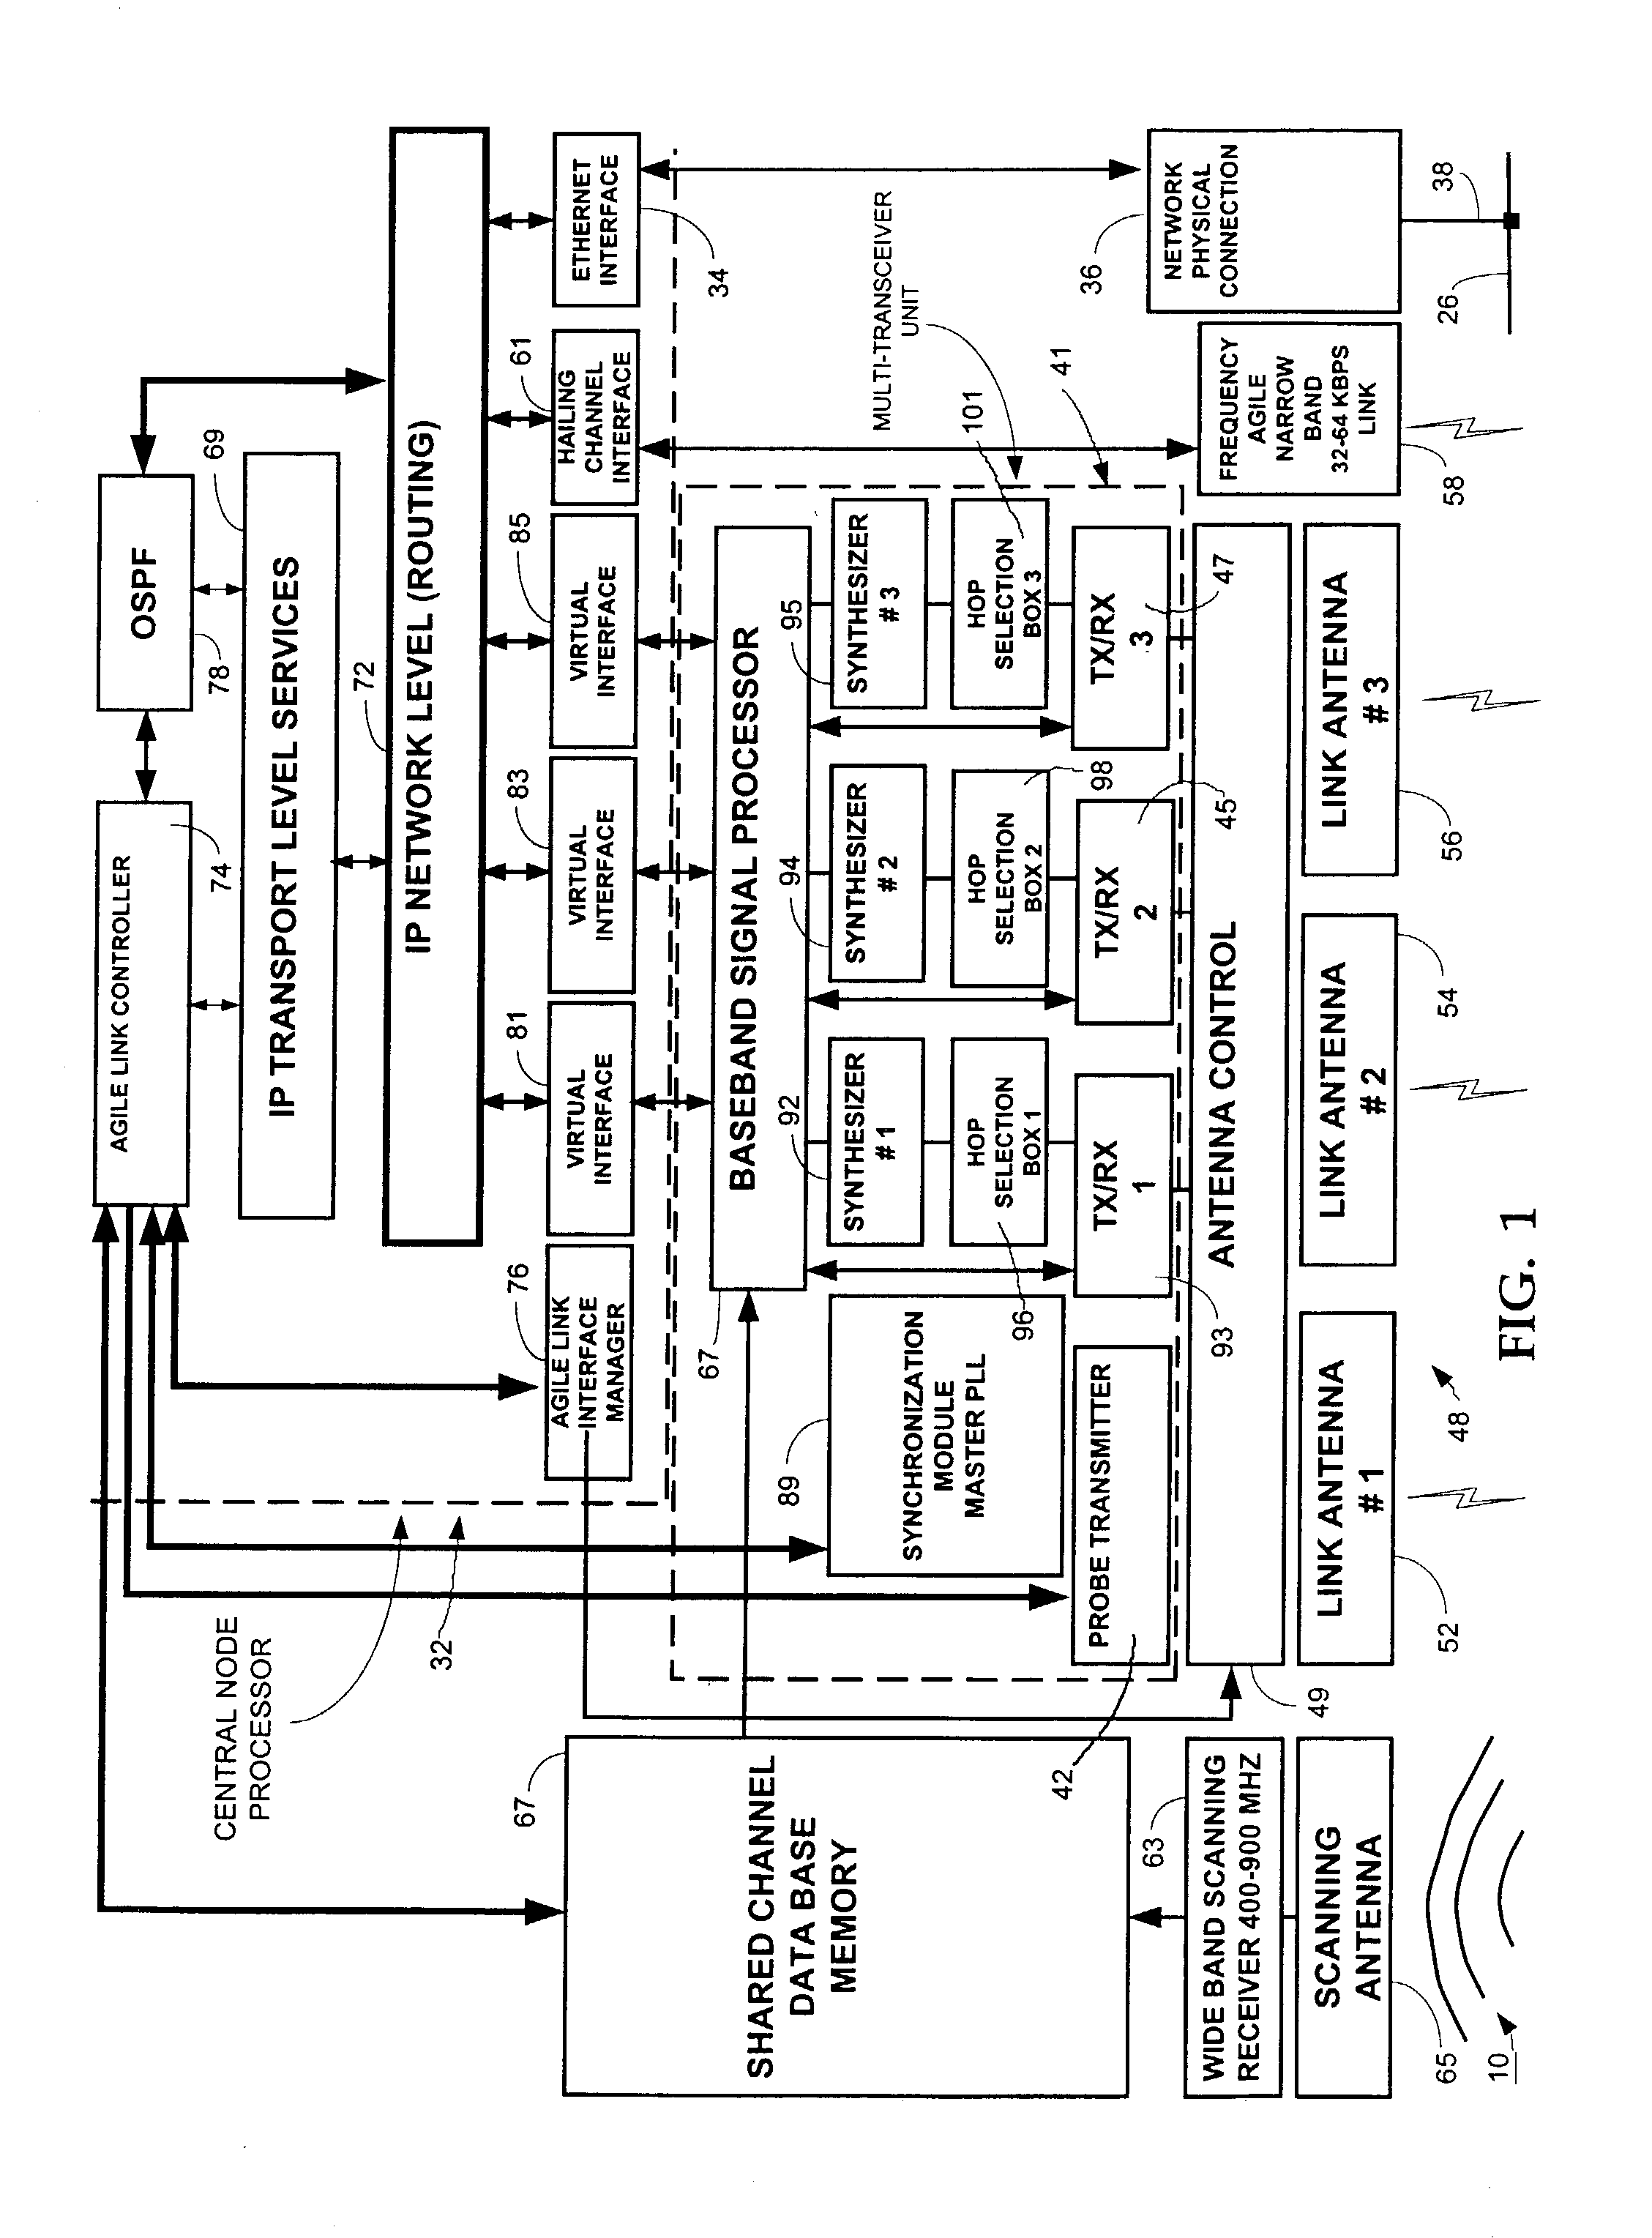 Clifford concept alarm wiring diagram and